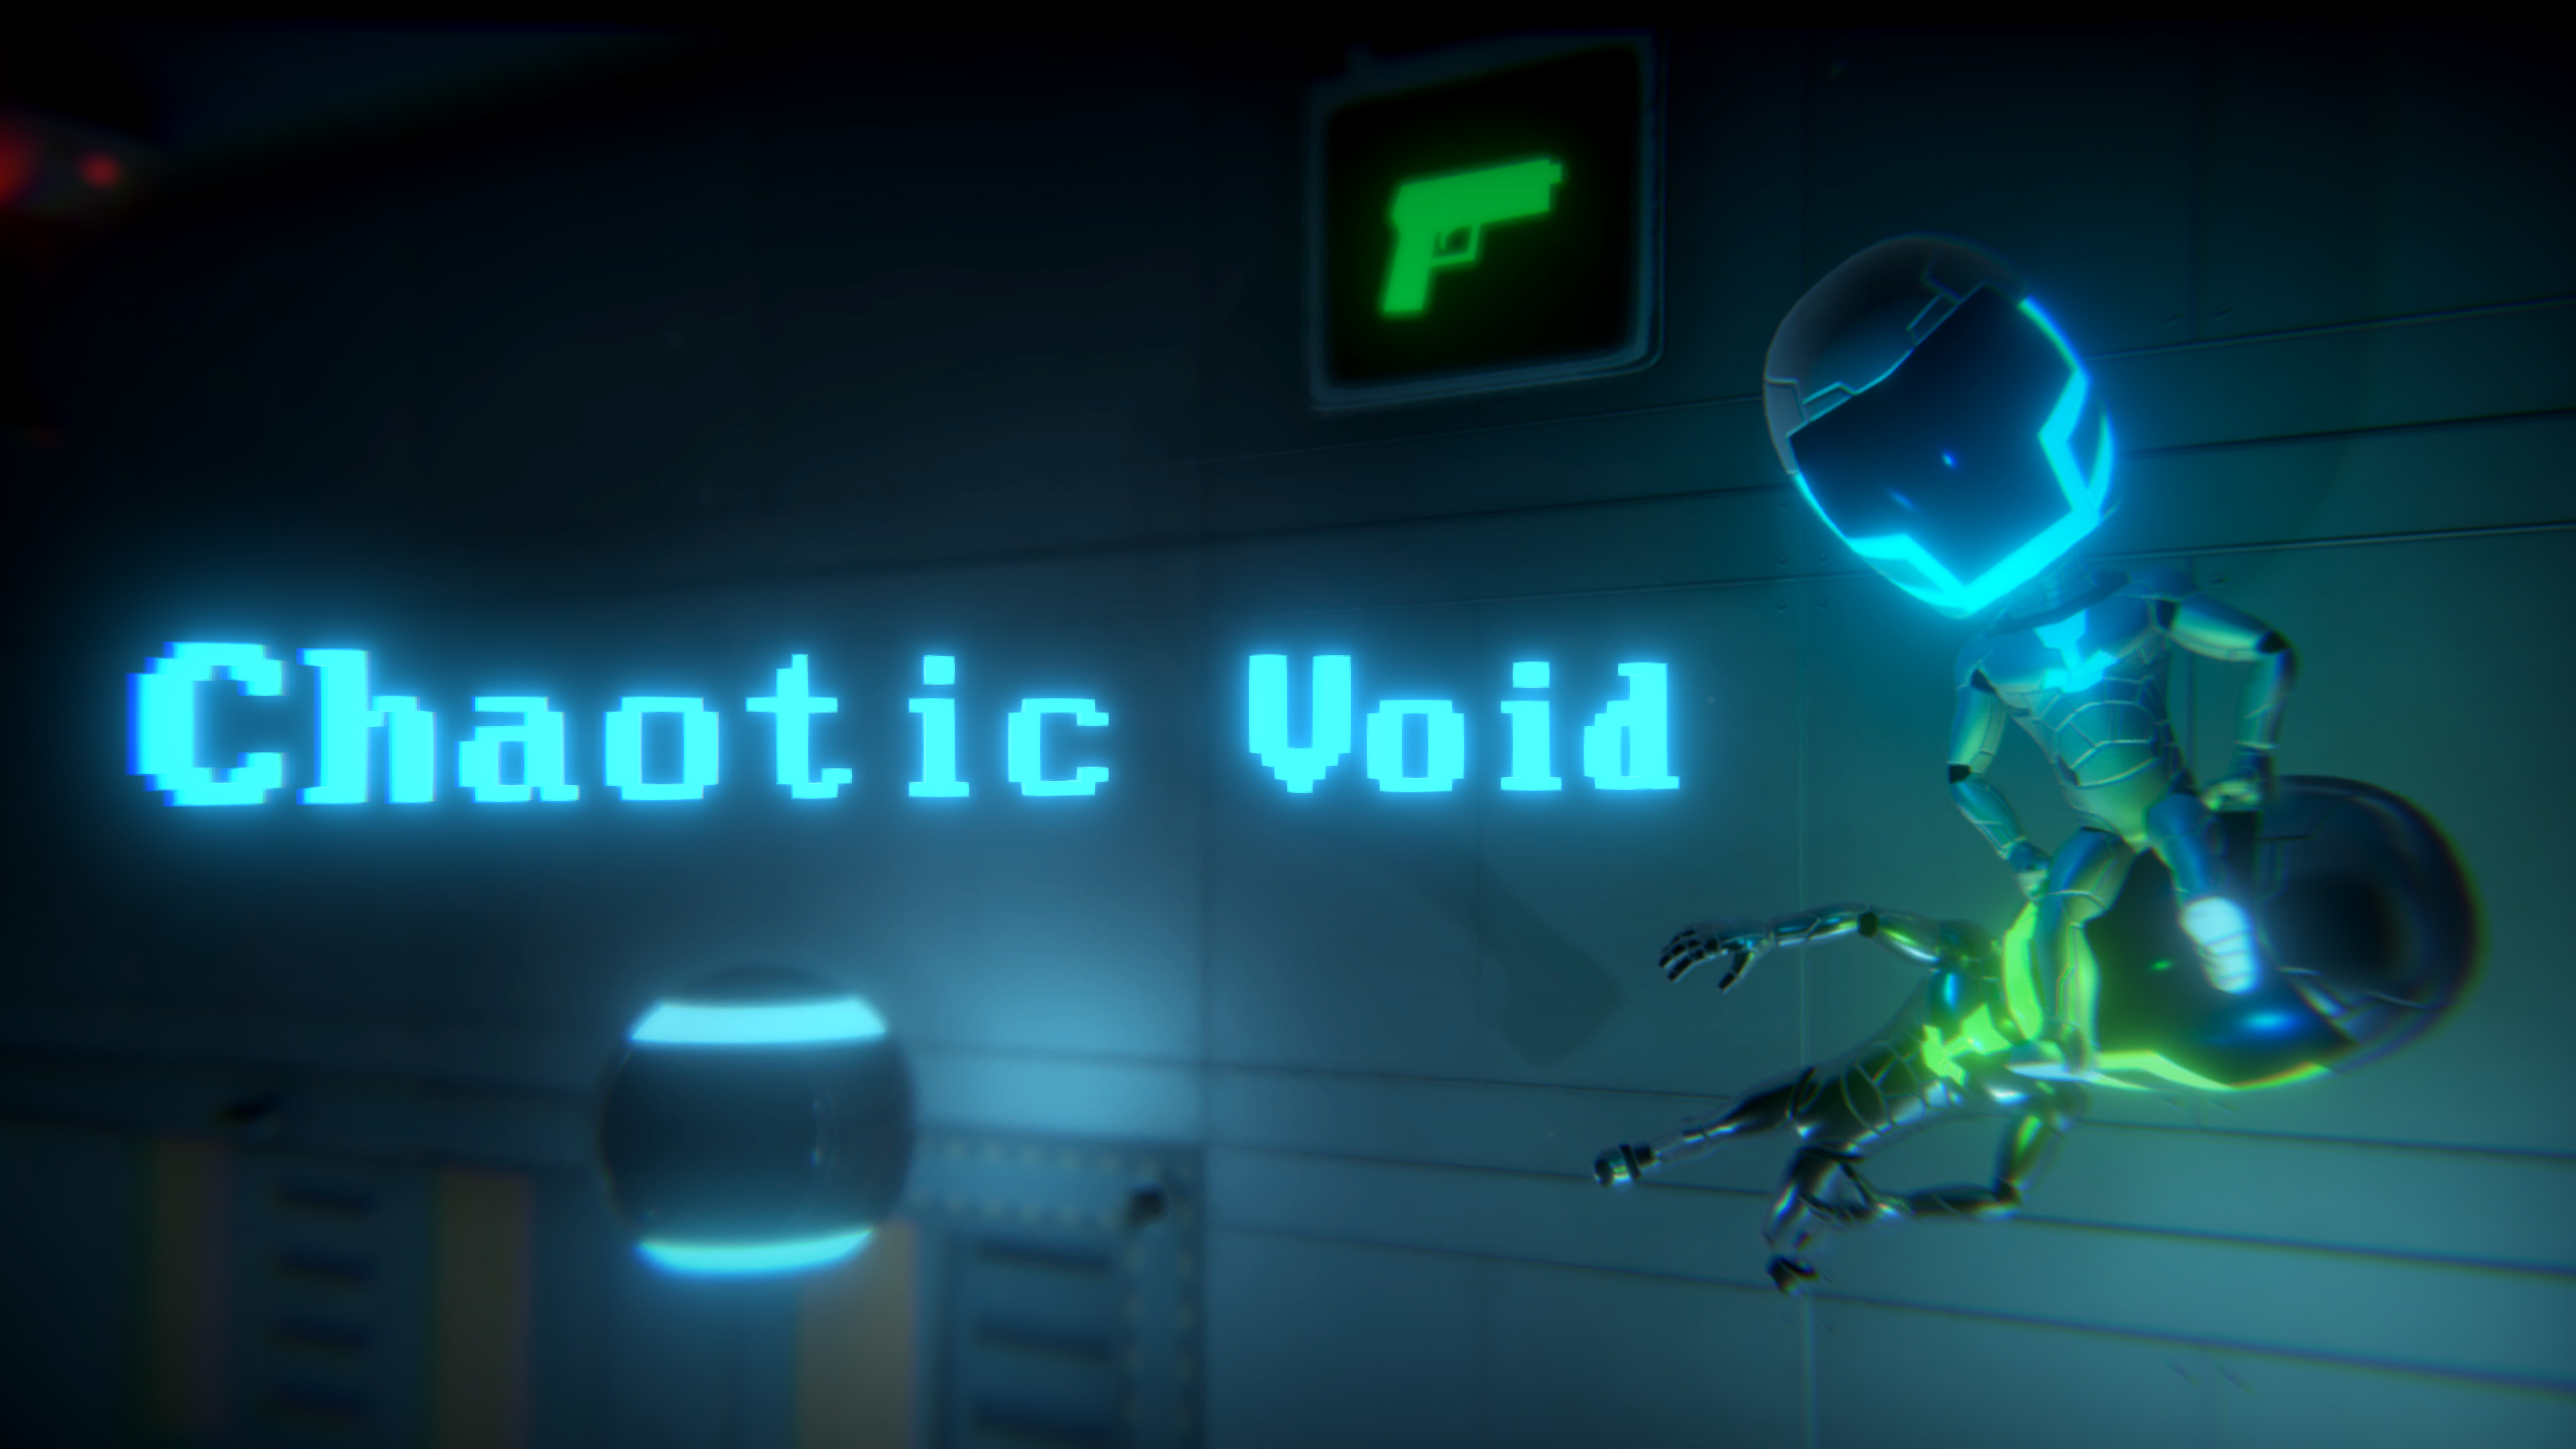 Chaotic Void